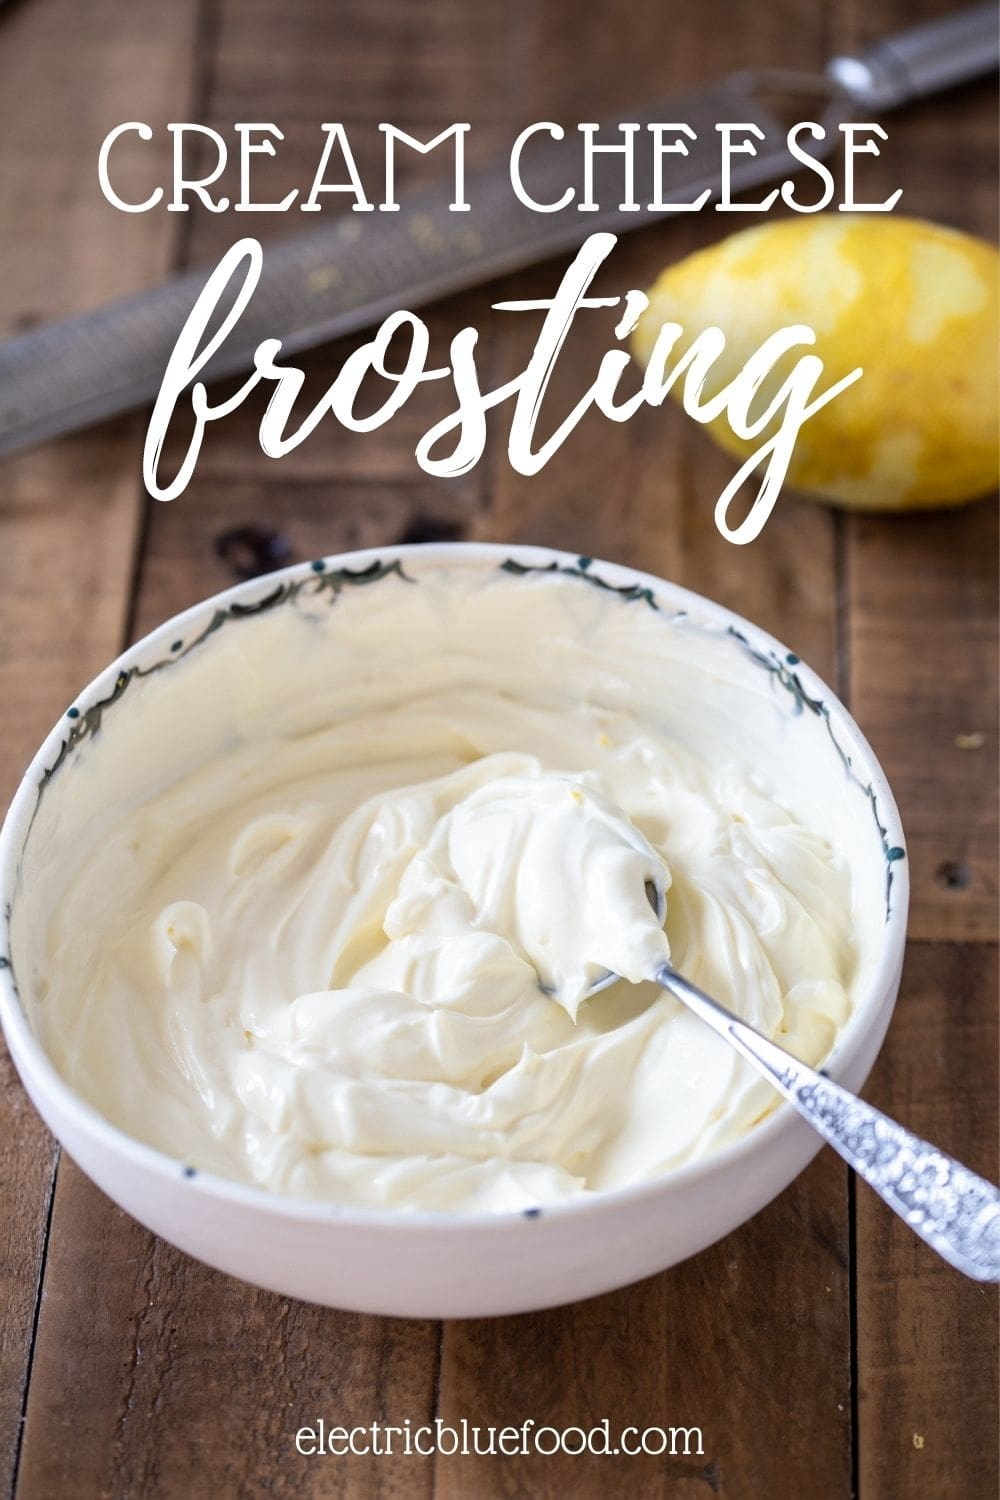 This cream cheese frosting with lemon zest is perfect to spread over a cake or pipe on cupcakes. The slight tang from the zest complements the sweet and sour quality of the sugar and cream cheese for a great flavour.